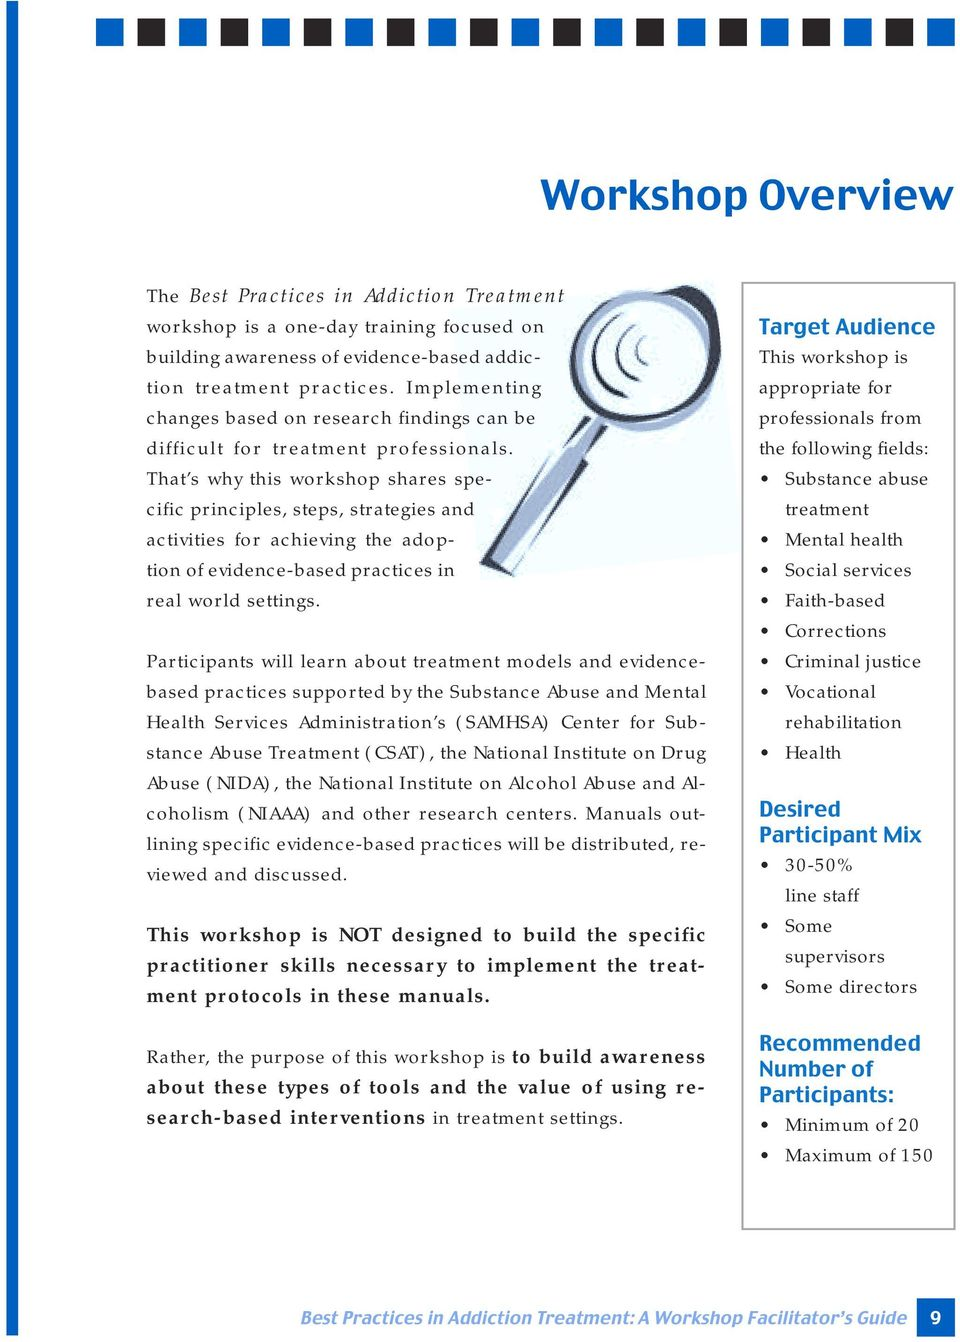 That s why this workshop shares specific principles, steps, strategies and activities for achieving the adoption of evidence-based practices in real world settings.